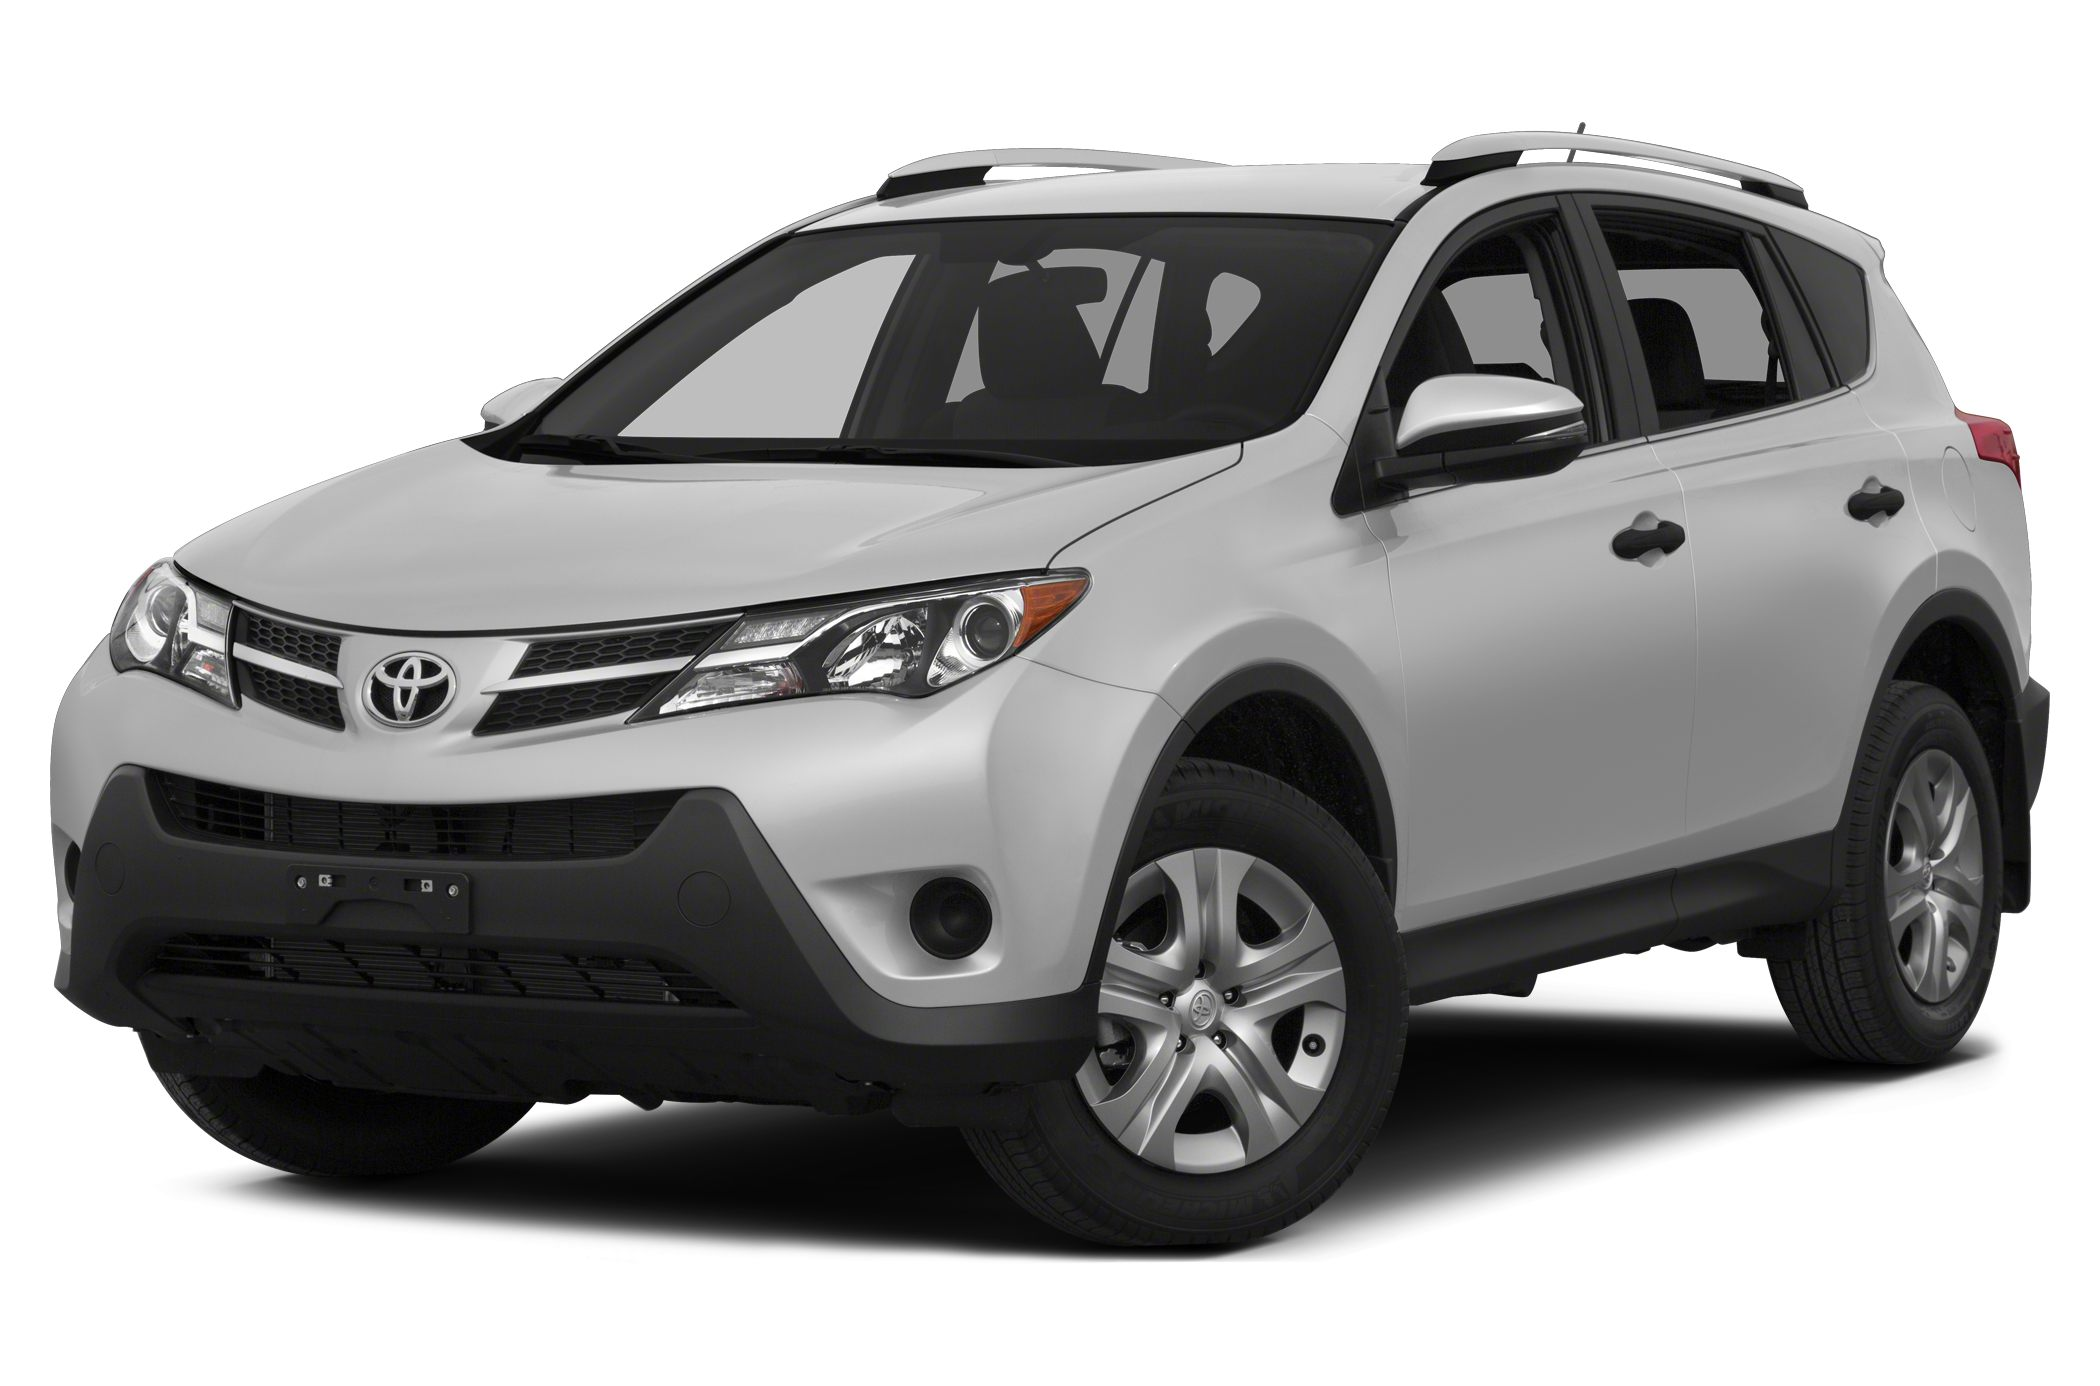 2015 Toyota RAV4 LE SUV for sale in Superior for $26,405 with 152 miles